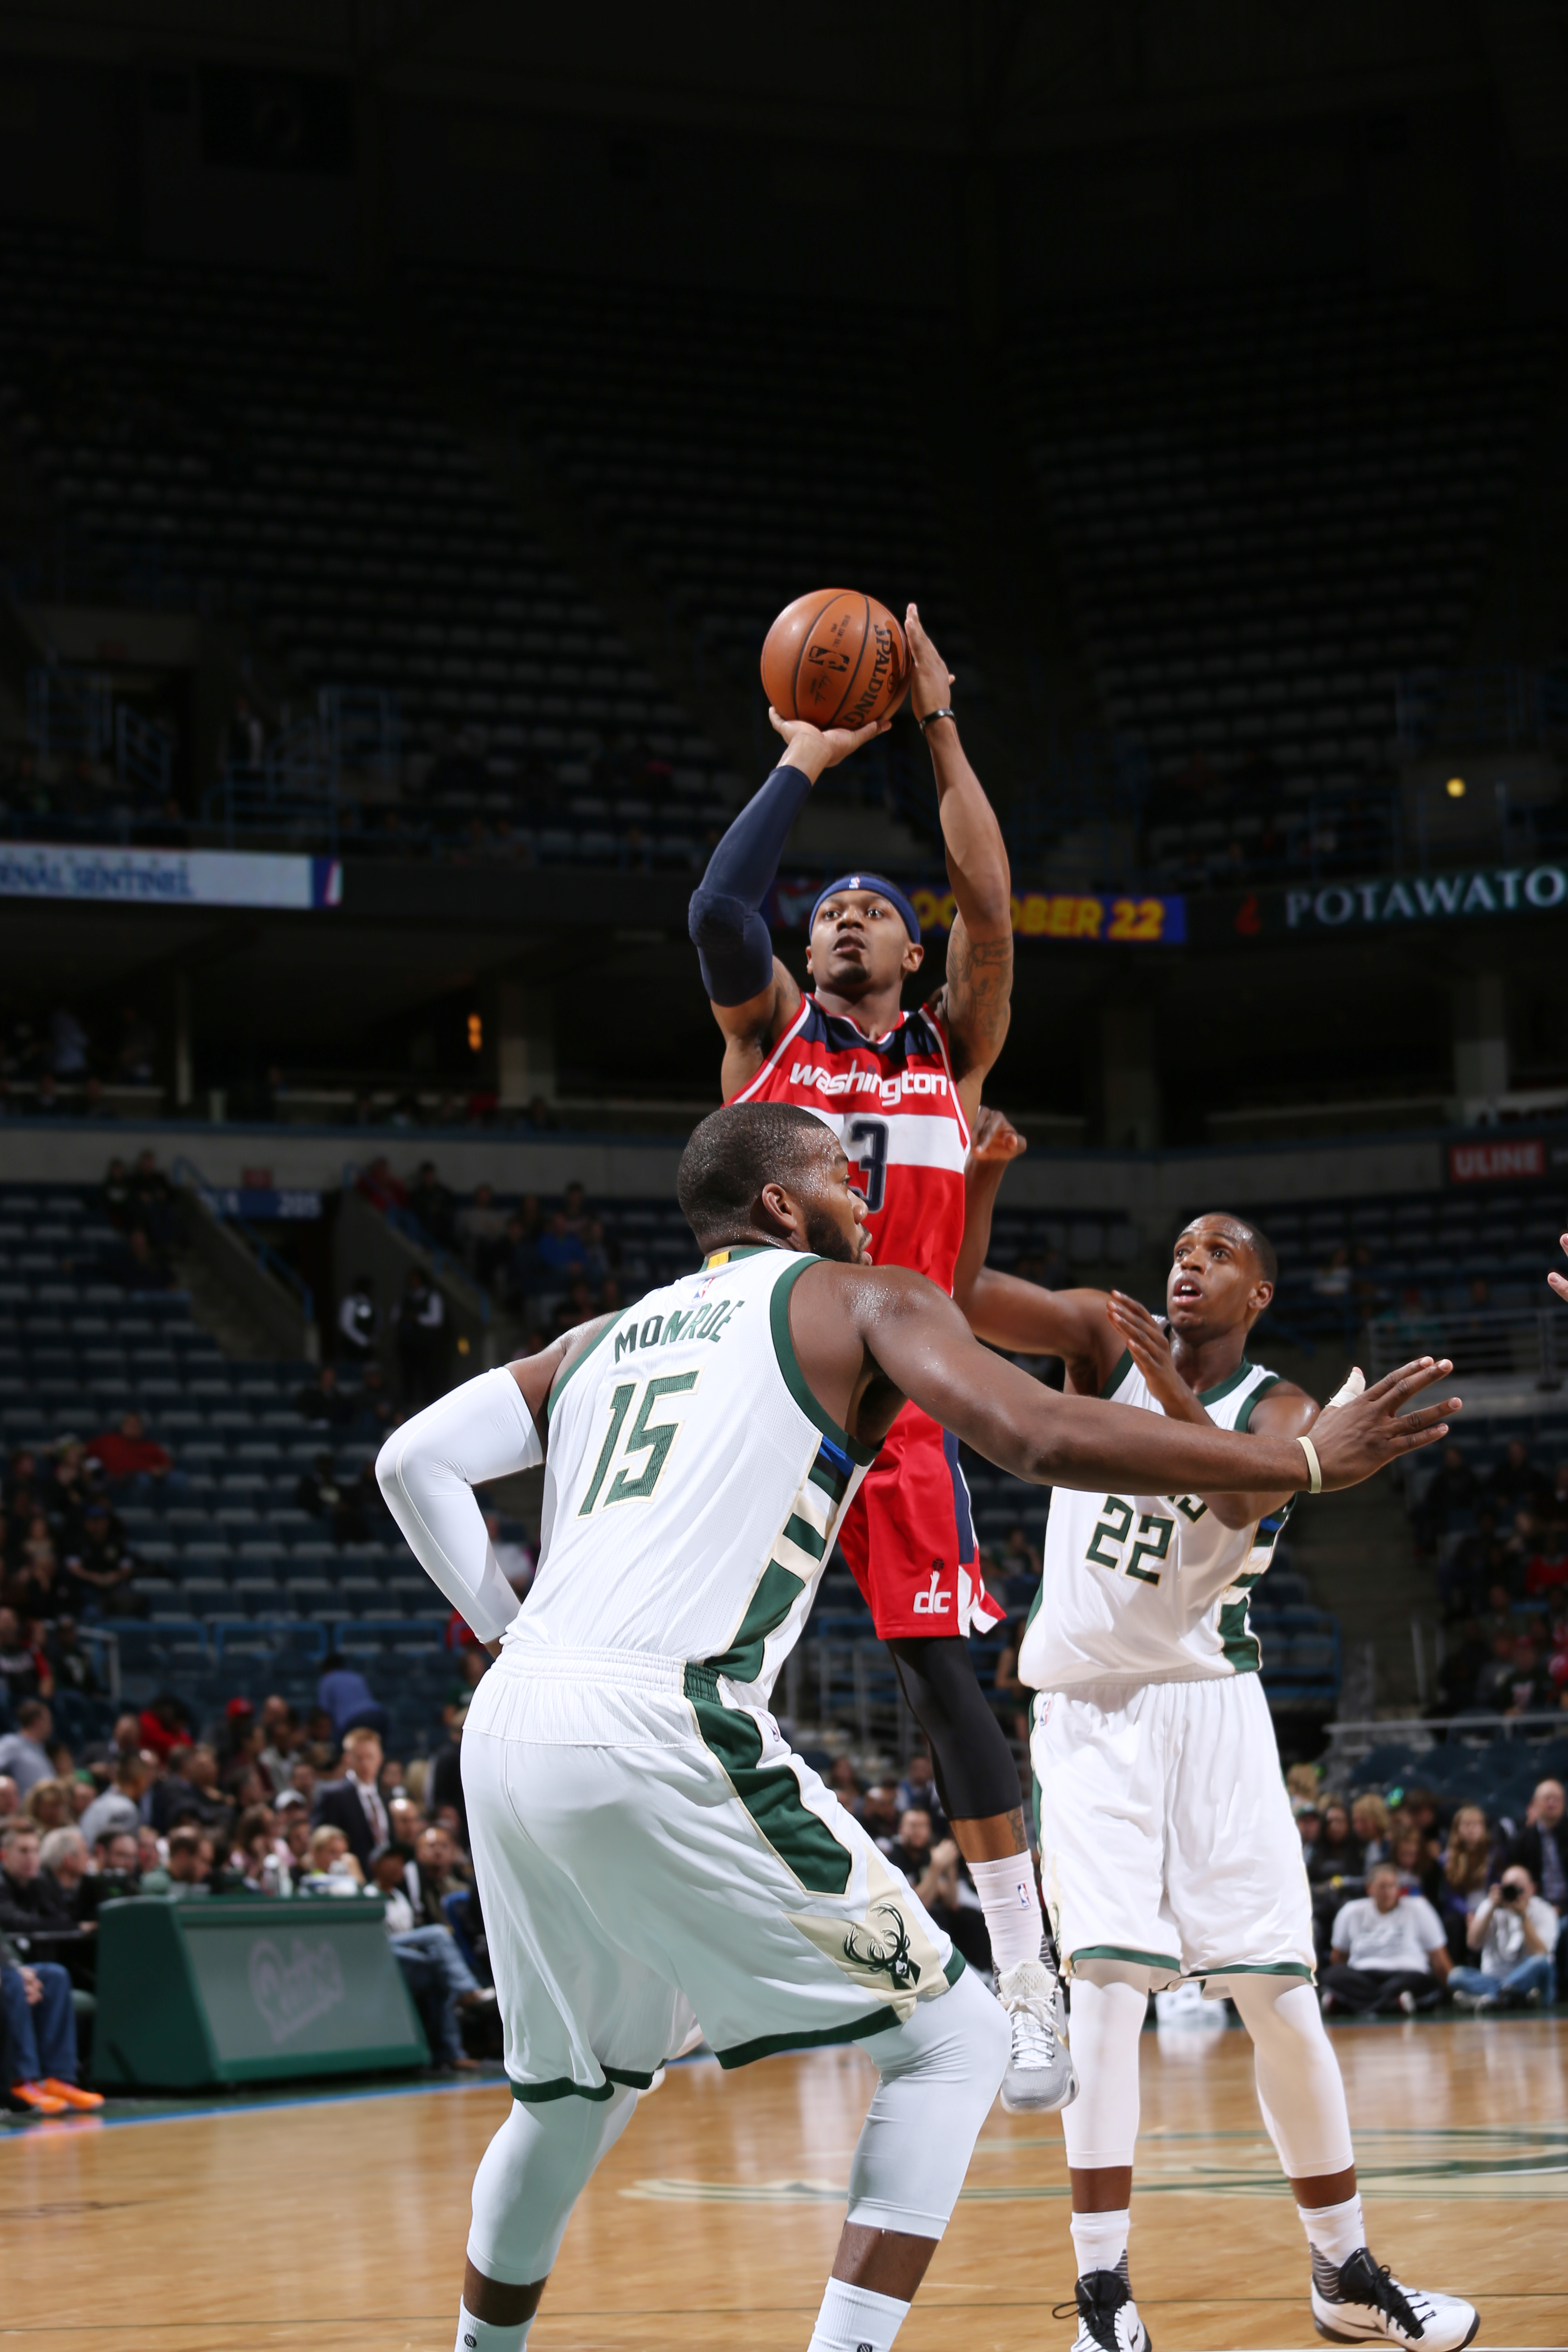 Milwaukee, WI - OCTOBER 17:  Bradley Beal #3 of the Washington Wizards shoots the ball against the Milwaukee Bucks during a preseason game on October 17, 2015 at the BMO Harris Bradley Center in Milwaukee, Wisconsin. (Photo by Gary Dineen/NBAE via Getty I